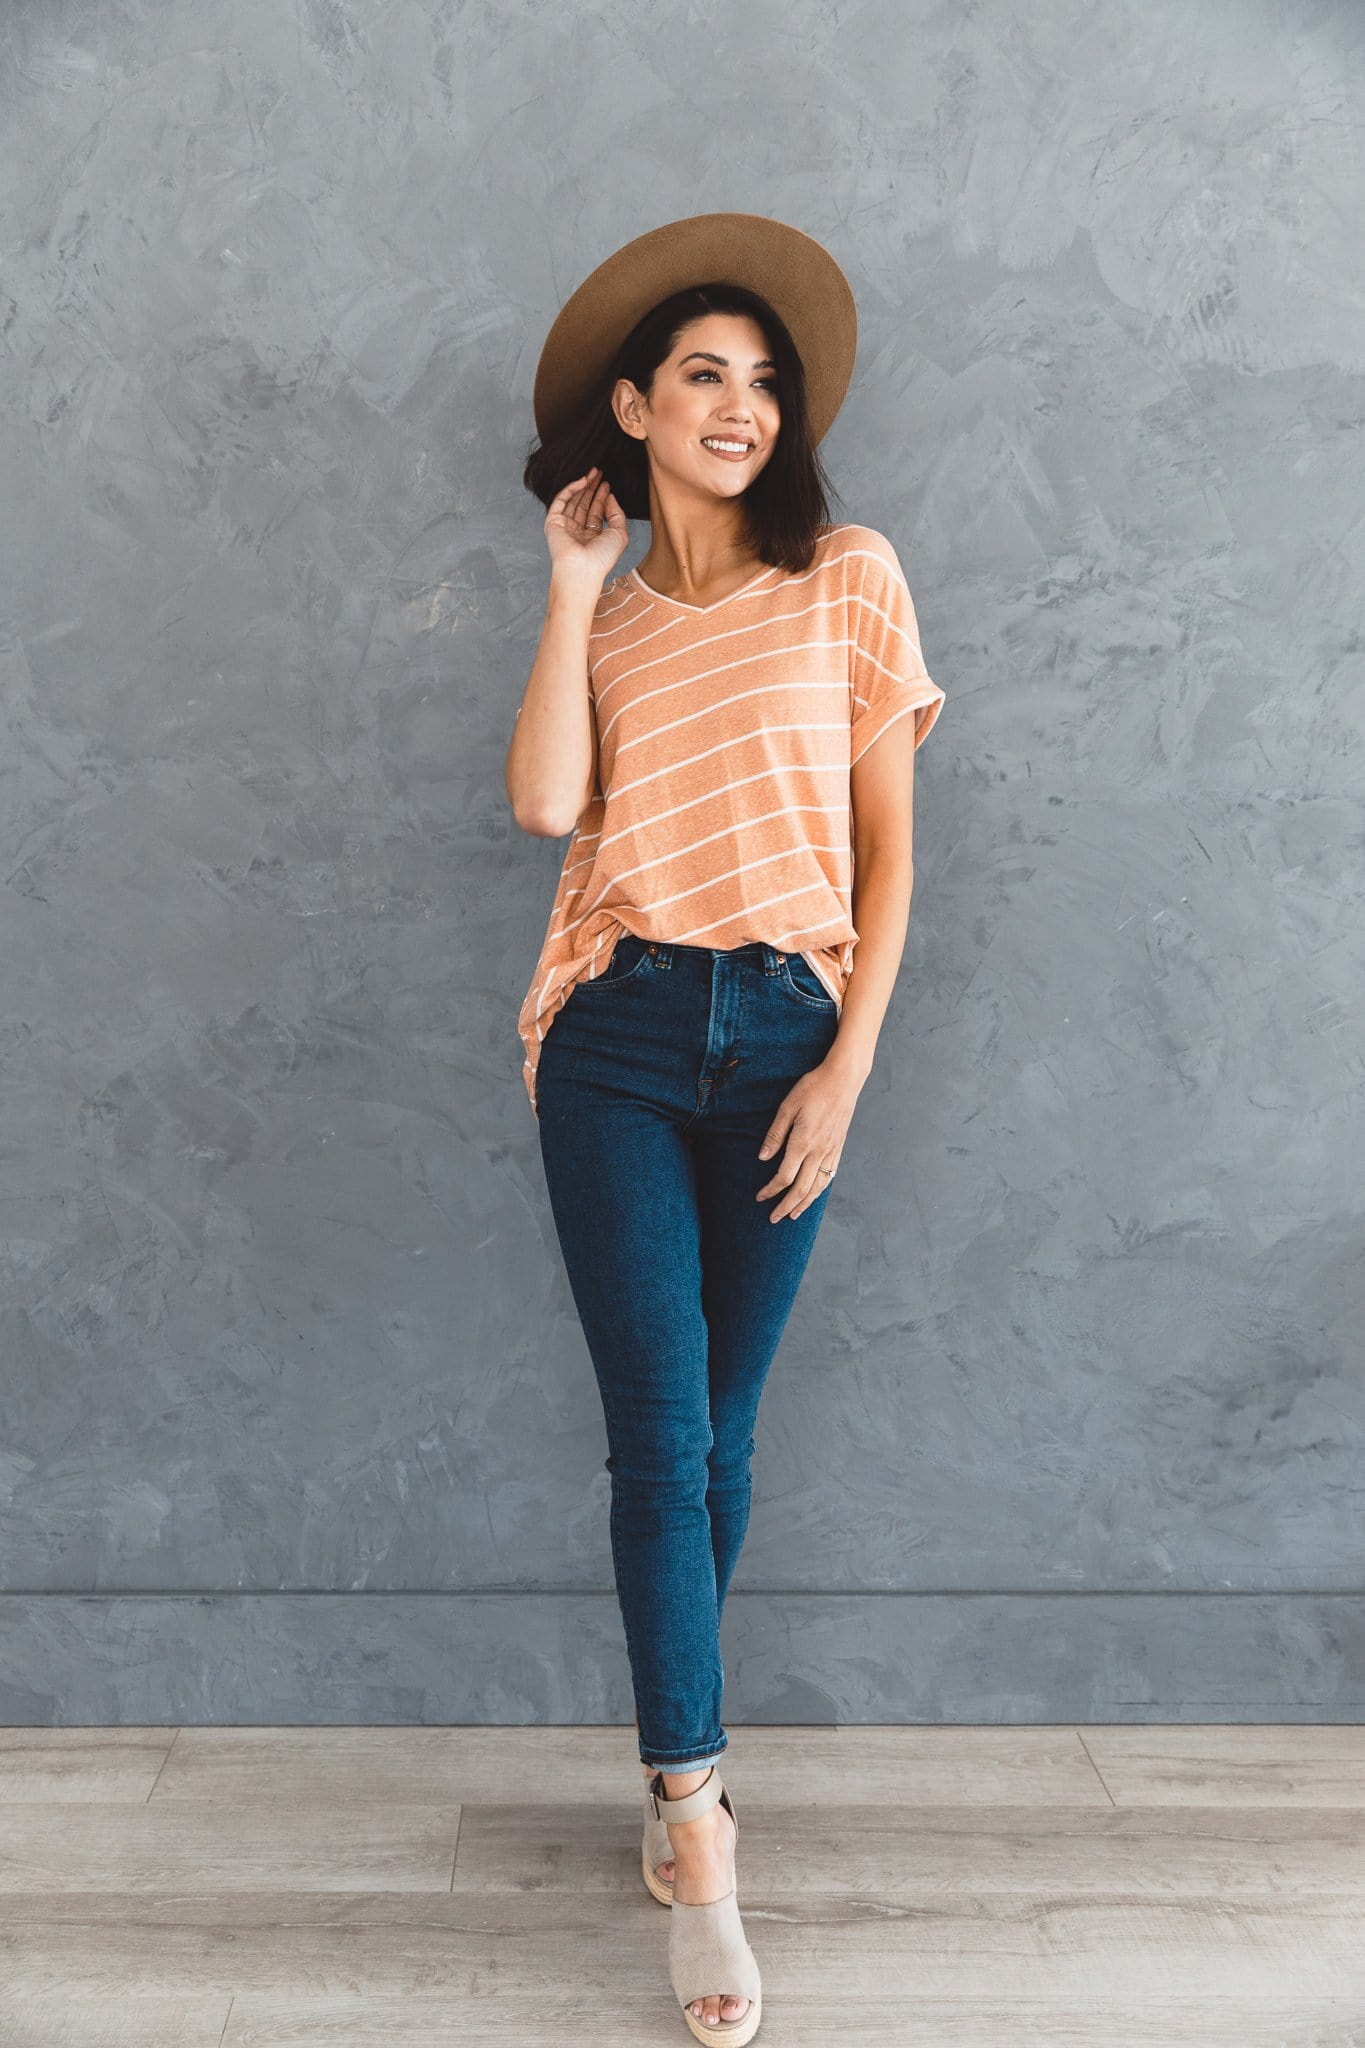 The Brylee Asymmetrical Striped Top in Chedron and Ivory